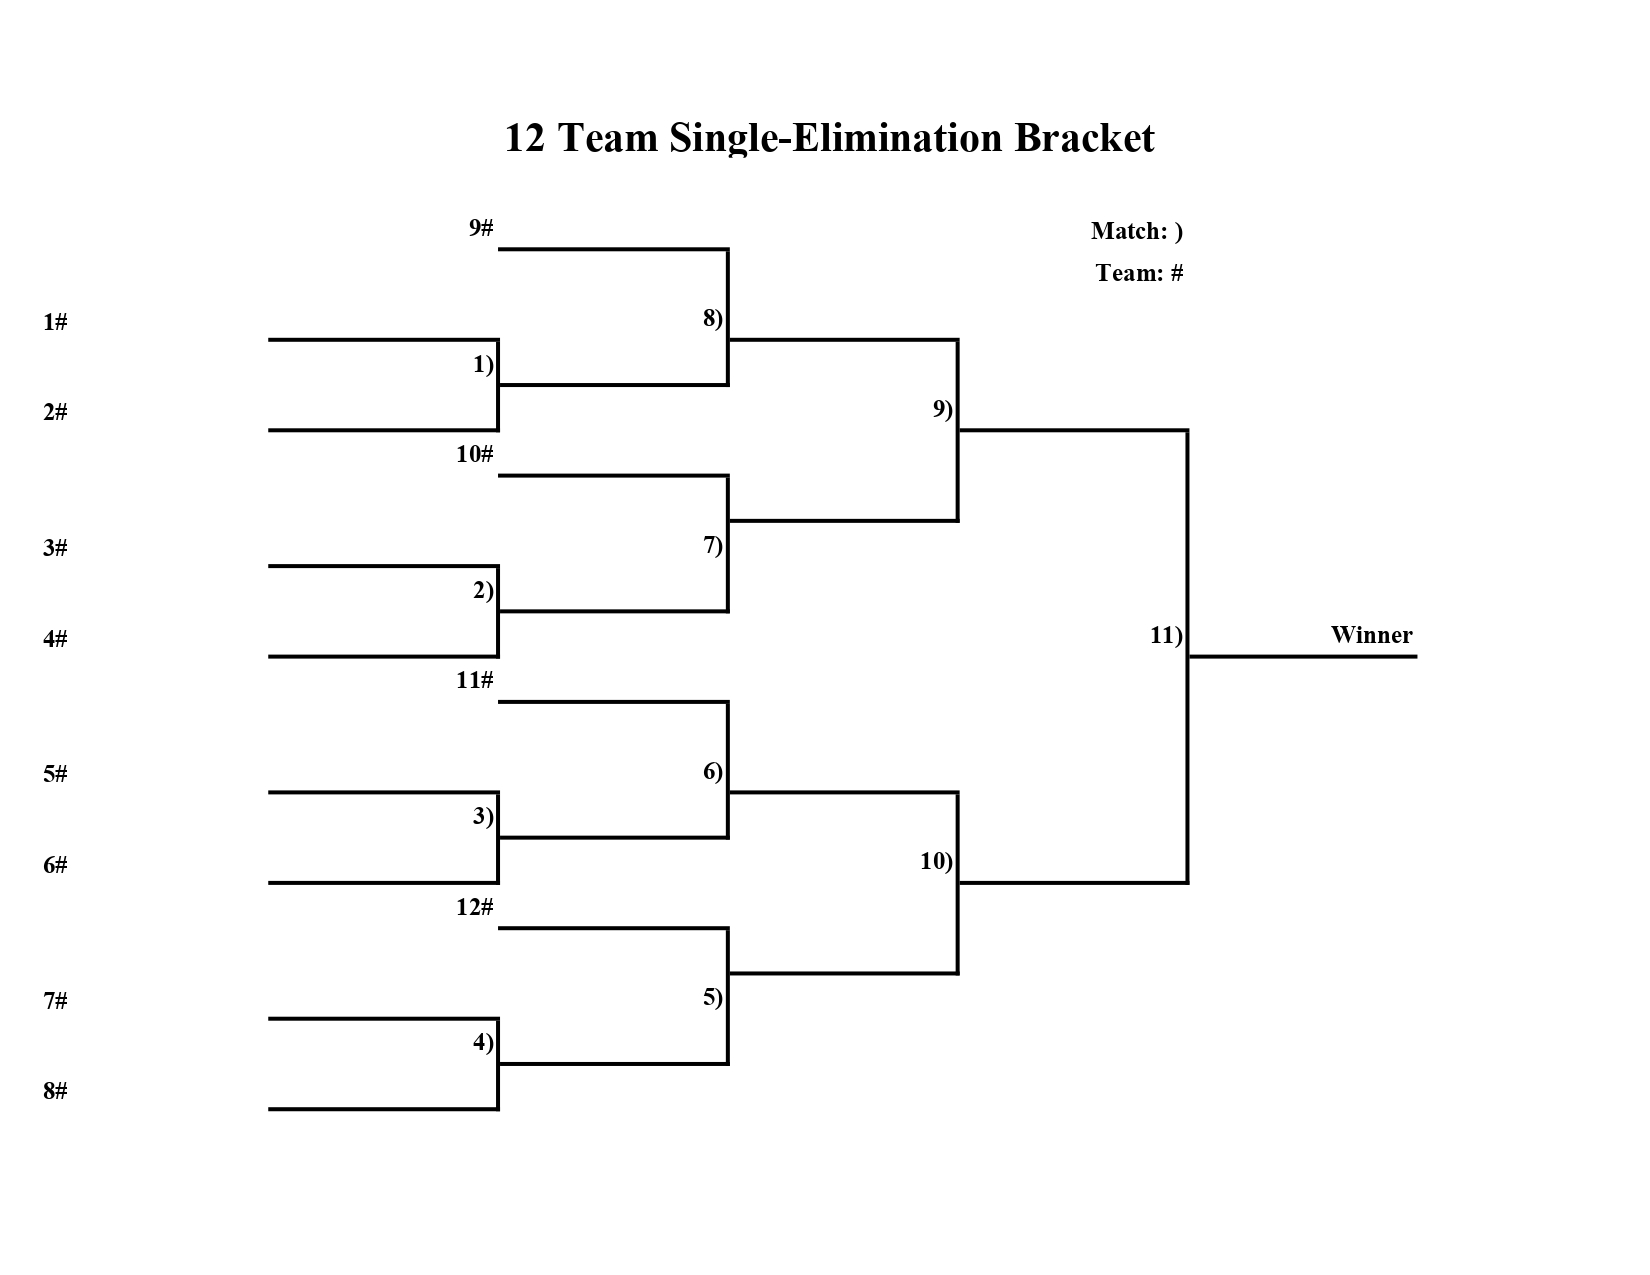 12-team single-elimination bracket